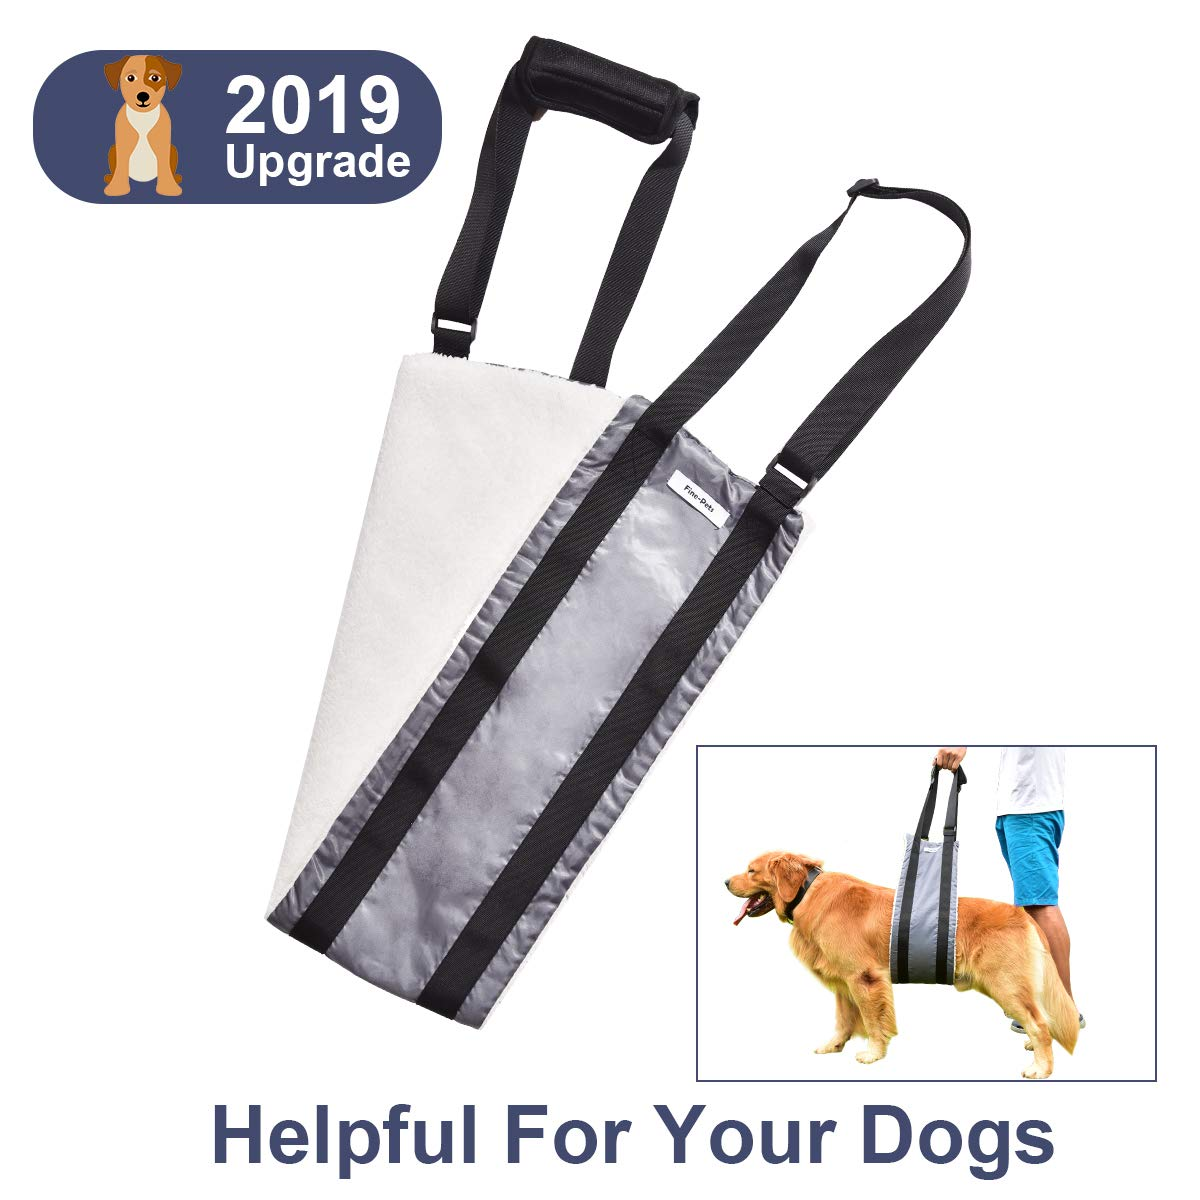 Fine-Pets Dog Sling Harness - Dog Support Lift Harness for Small-Medium-Large Breed Dogs - Small Dog Lifting Hip Harness for Rear Legs - Adjustable Handles and Soft for Elderly Dogs,Disabled,Injuired by Fine-Pets